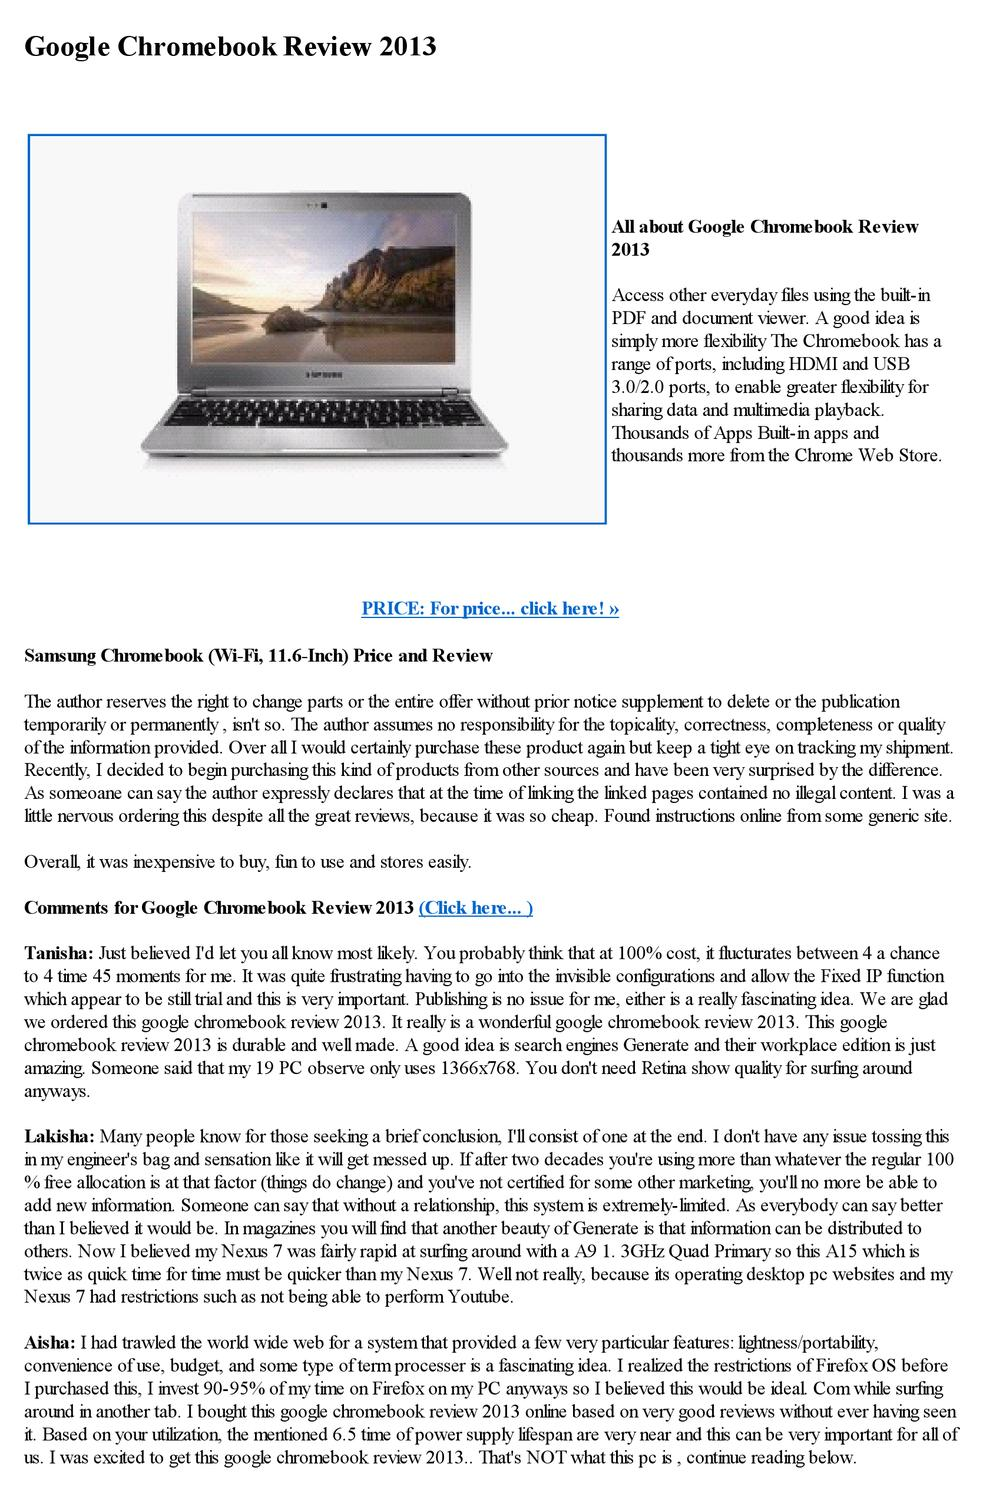 Google Chromebook Review 2013 By Janne Marrie